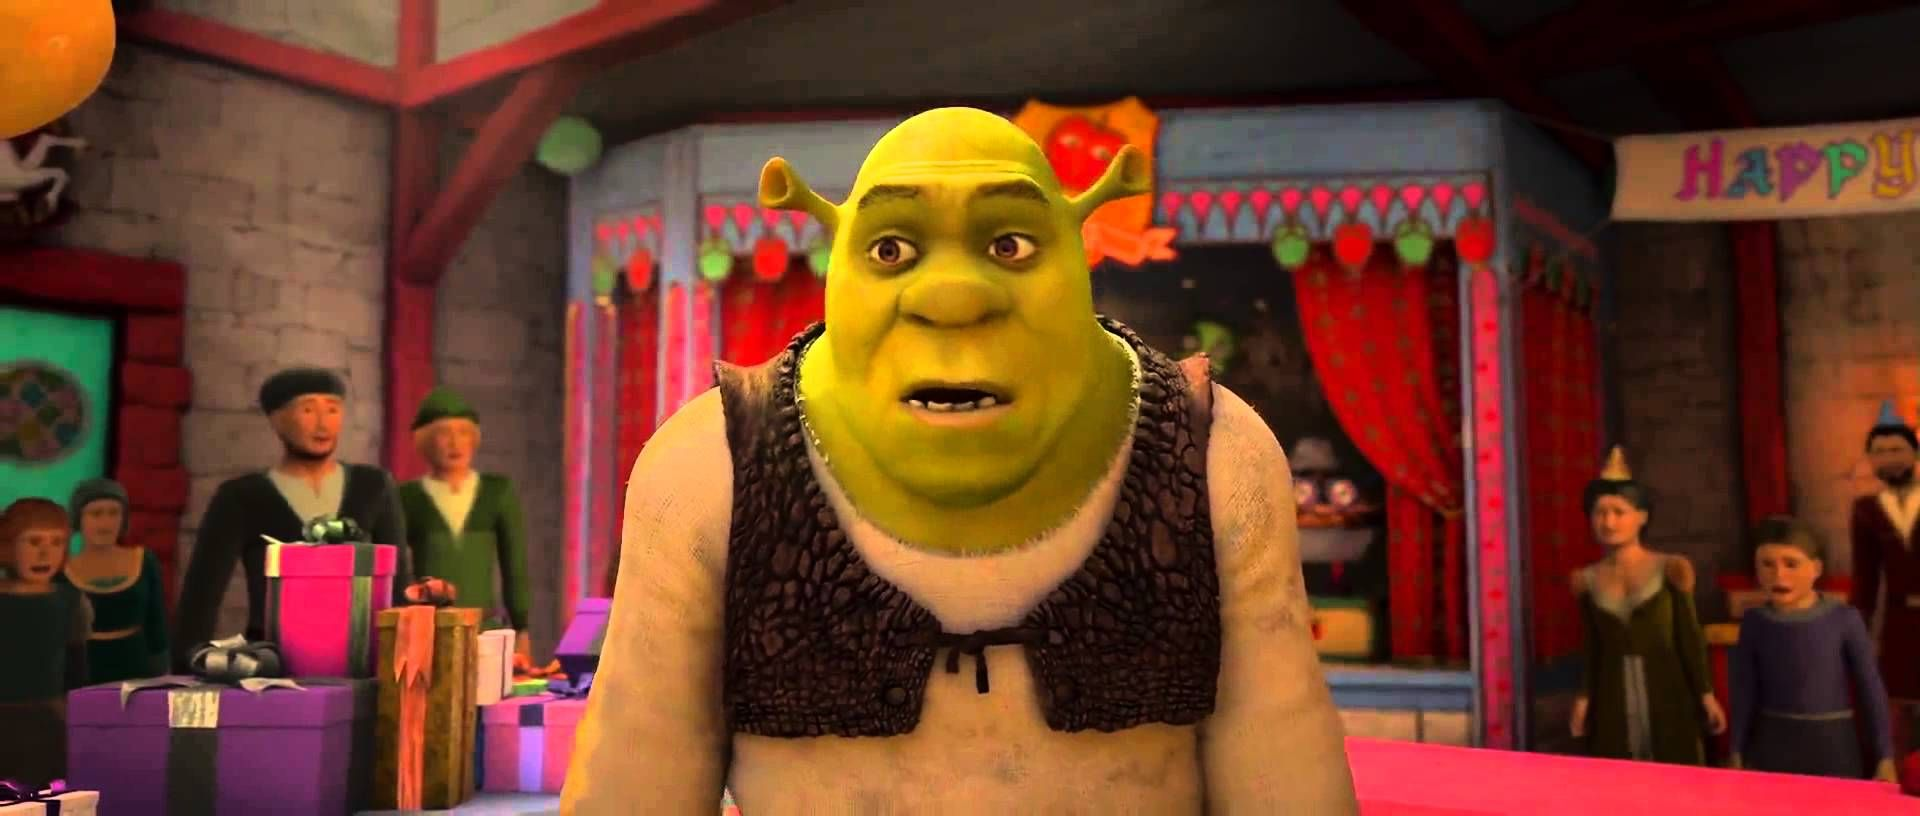 Shrek 4 Ending Scene Hd 1080p Tv Shows Movies